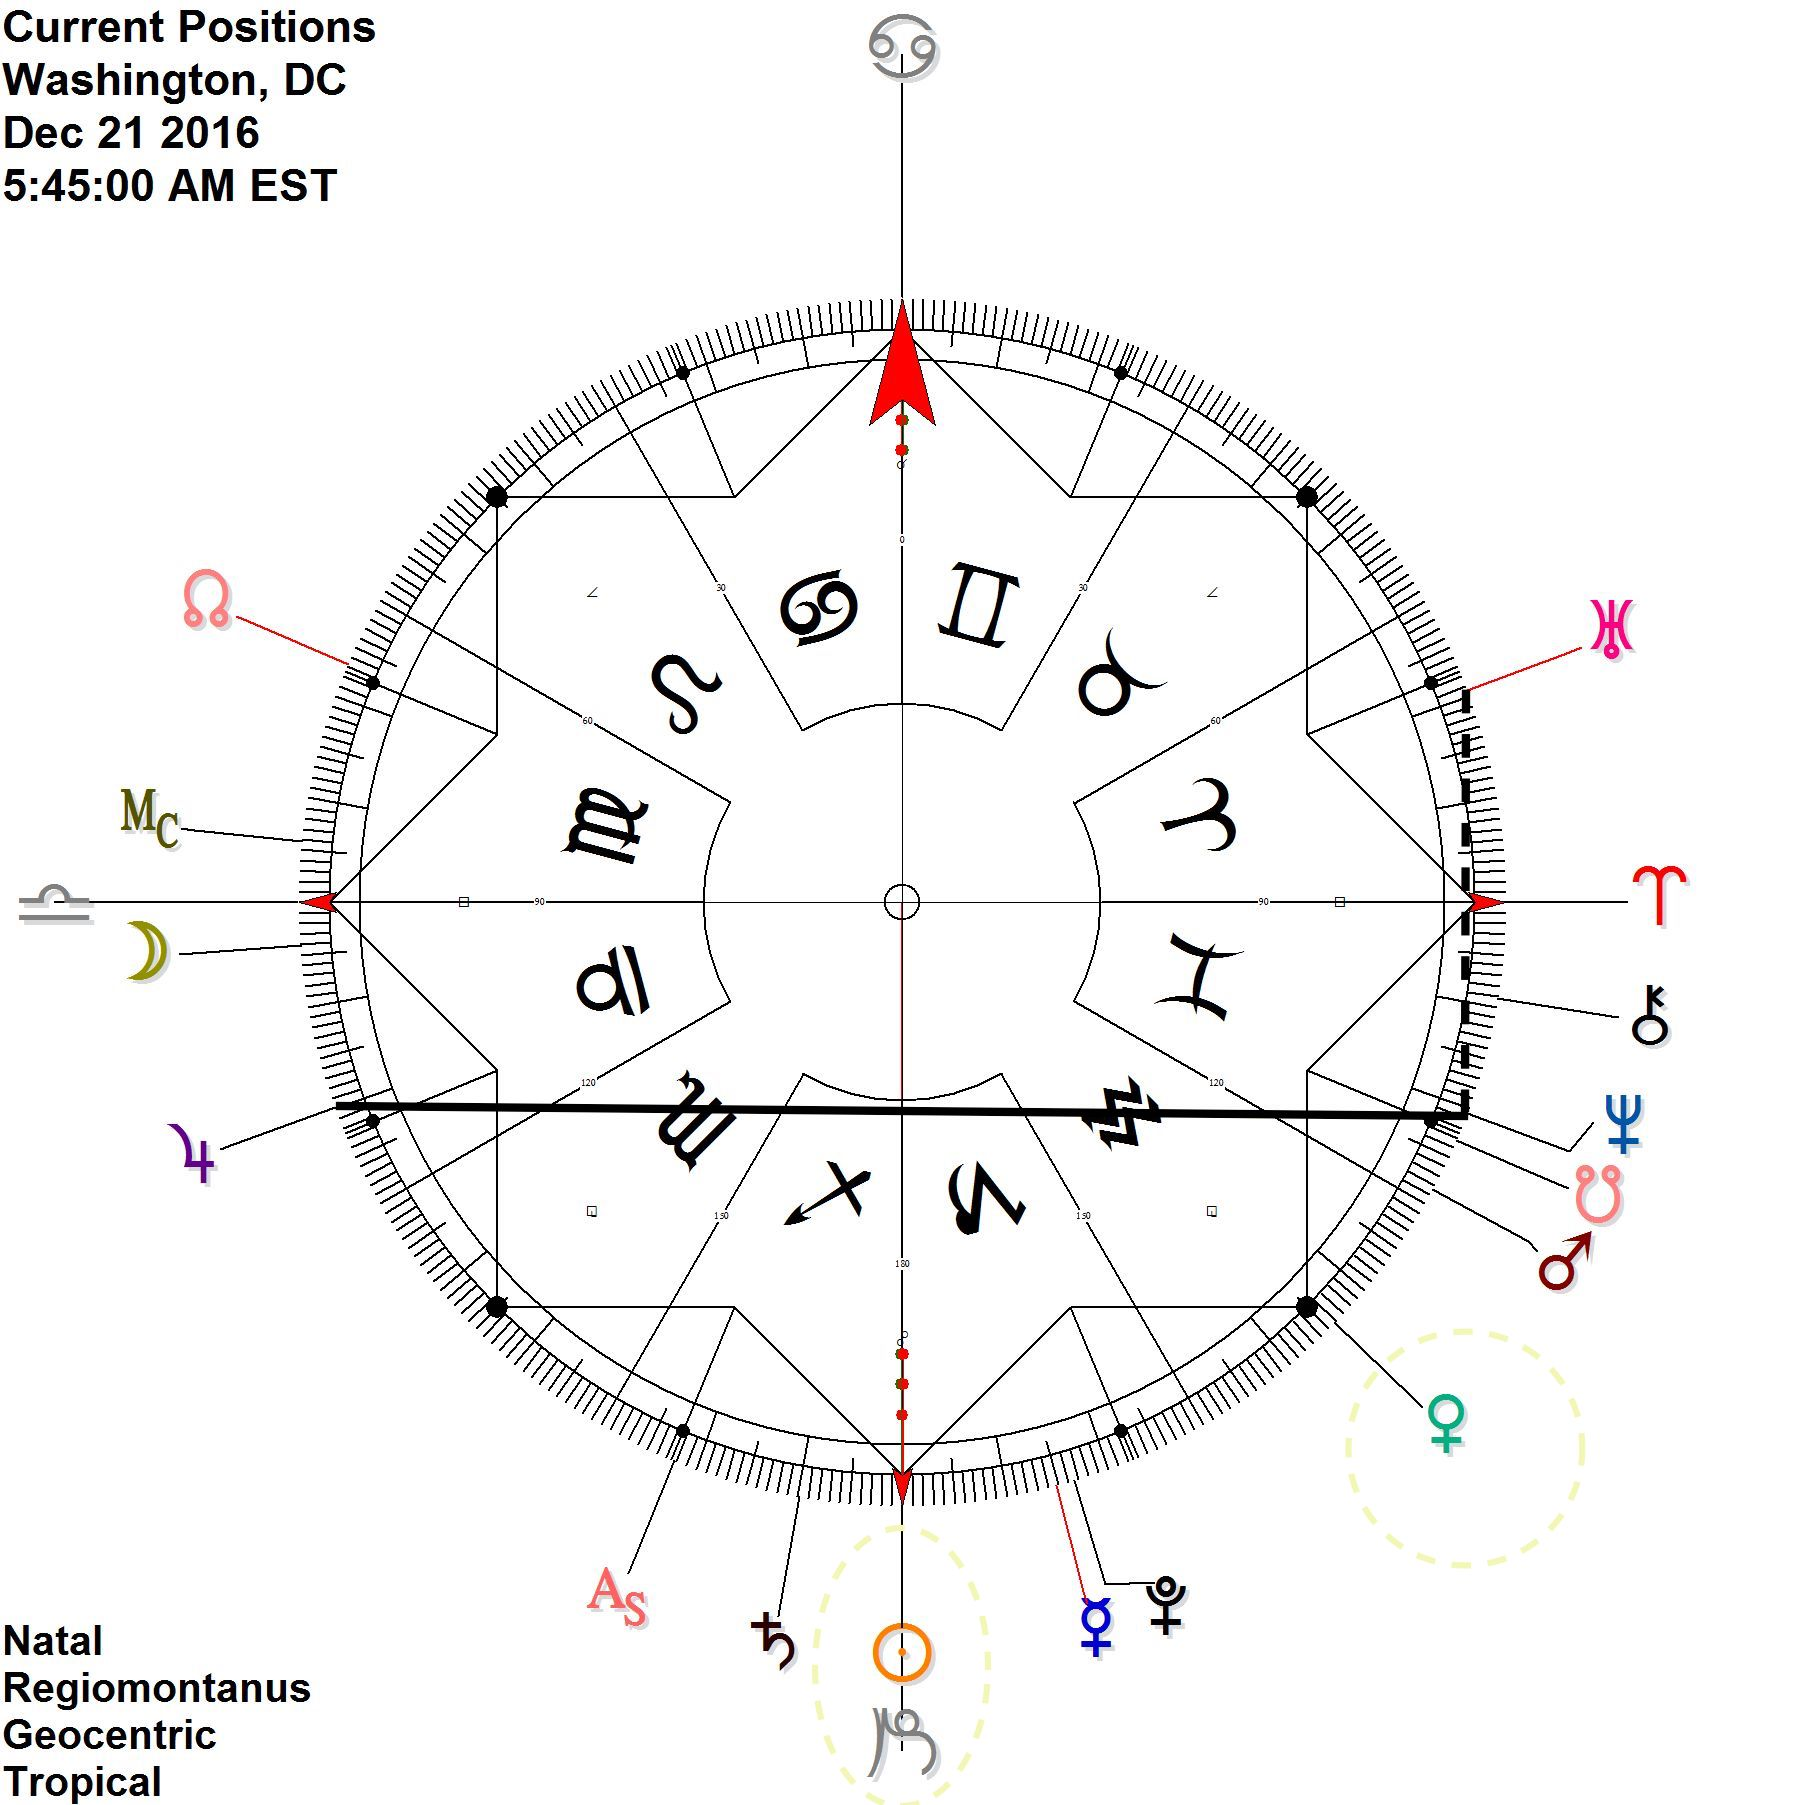 SOLSTICE // Capricorn Ingress Long-standing signatures: Uranus Neptune + Jupiter Neptune Venus on cardinal axis @ 15 fixed (15AQU49)  Saturn advancing on the Ascendant for Washington, DC  (again)